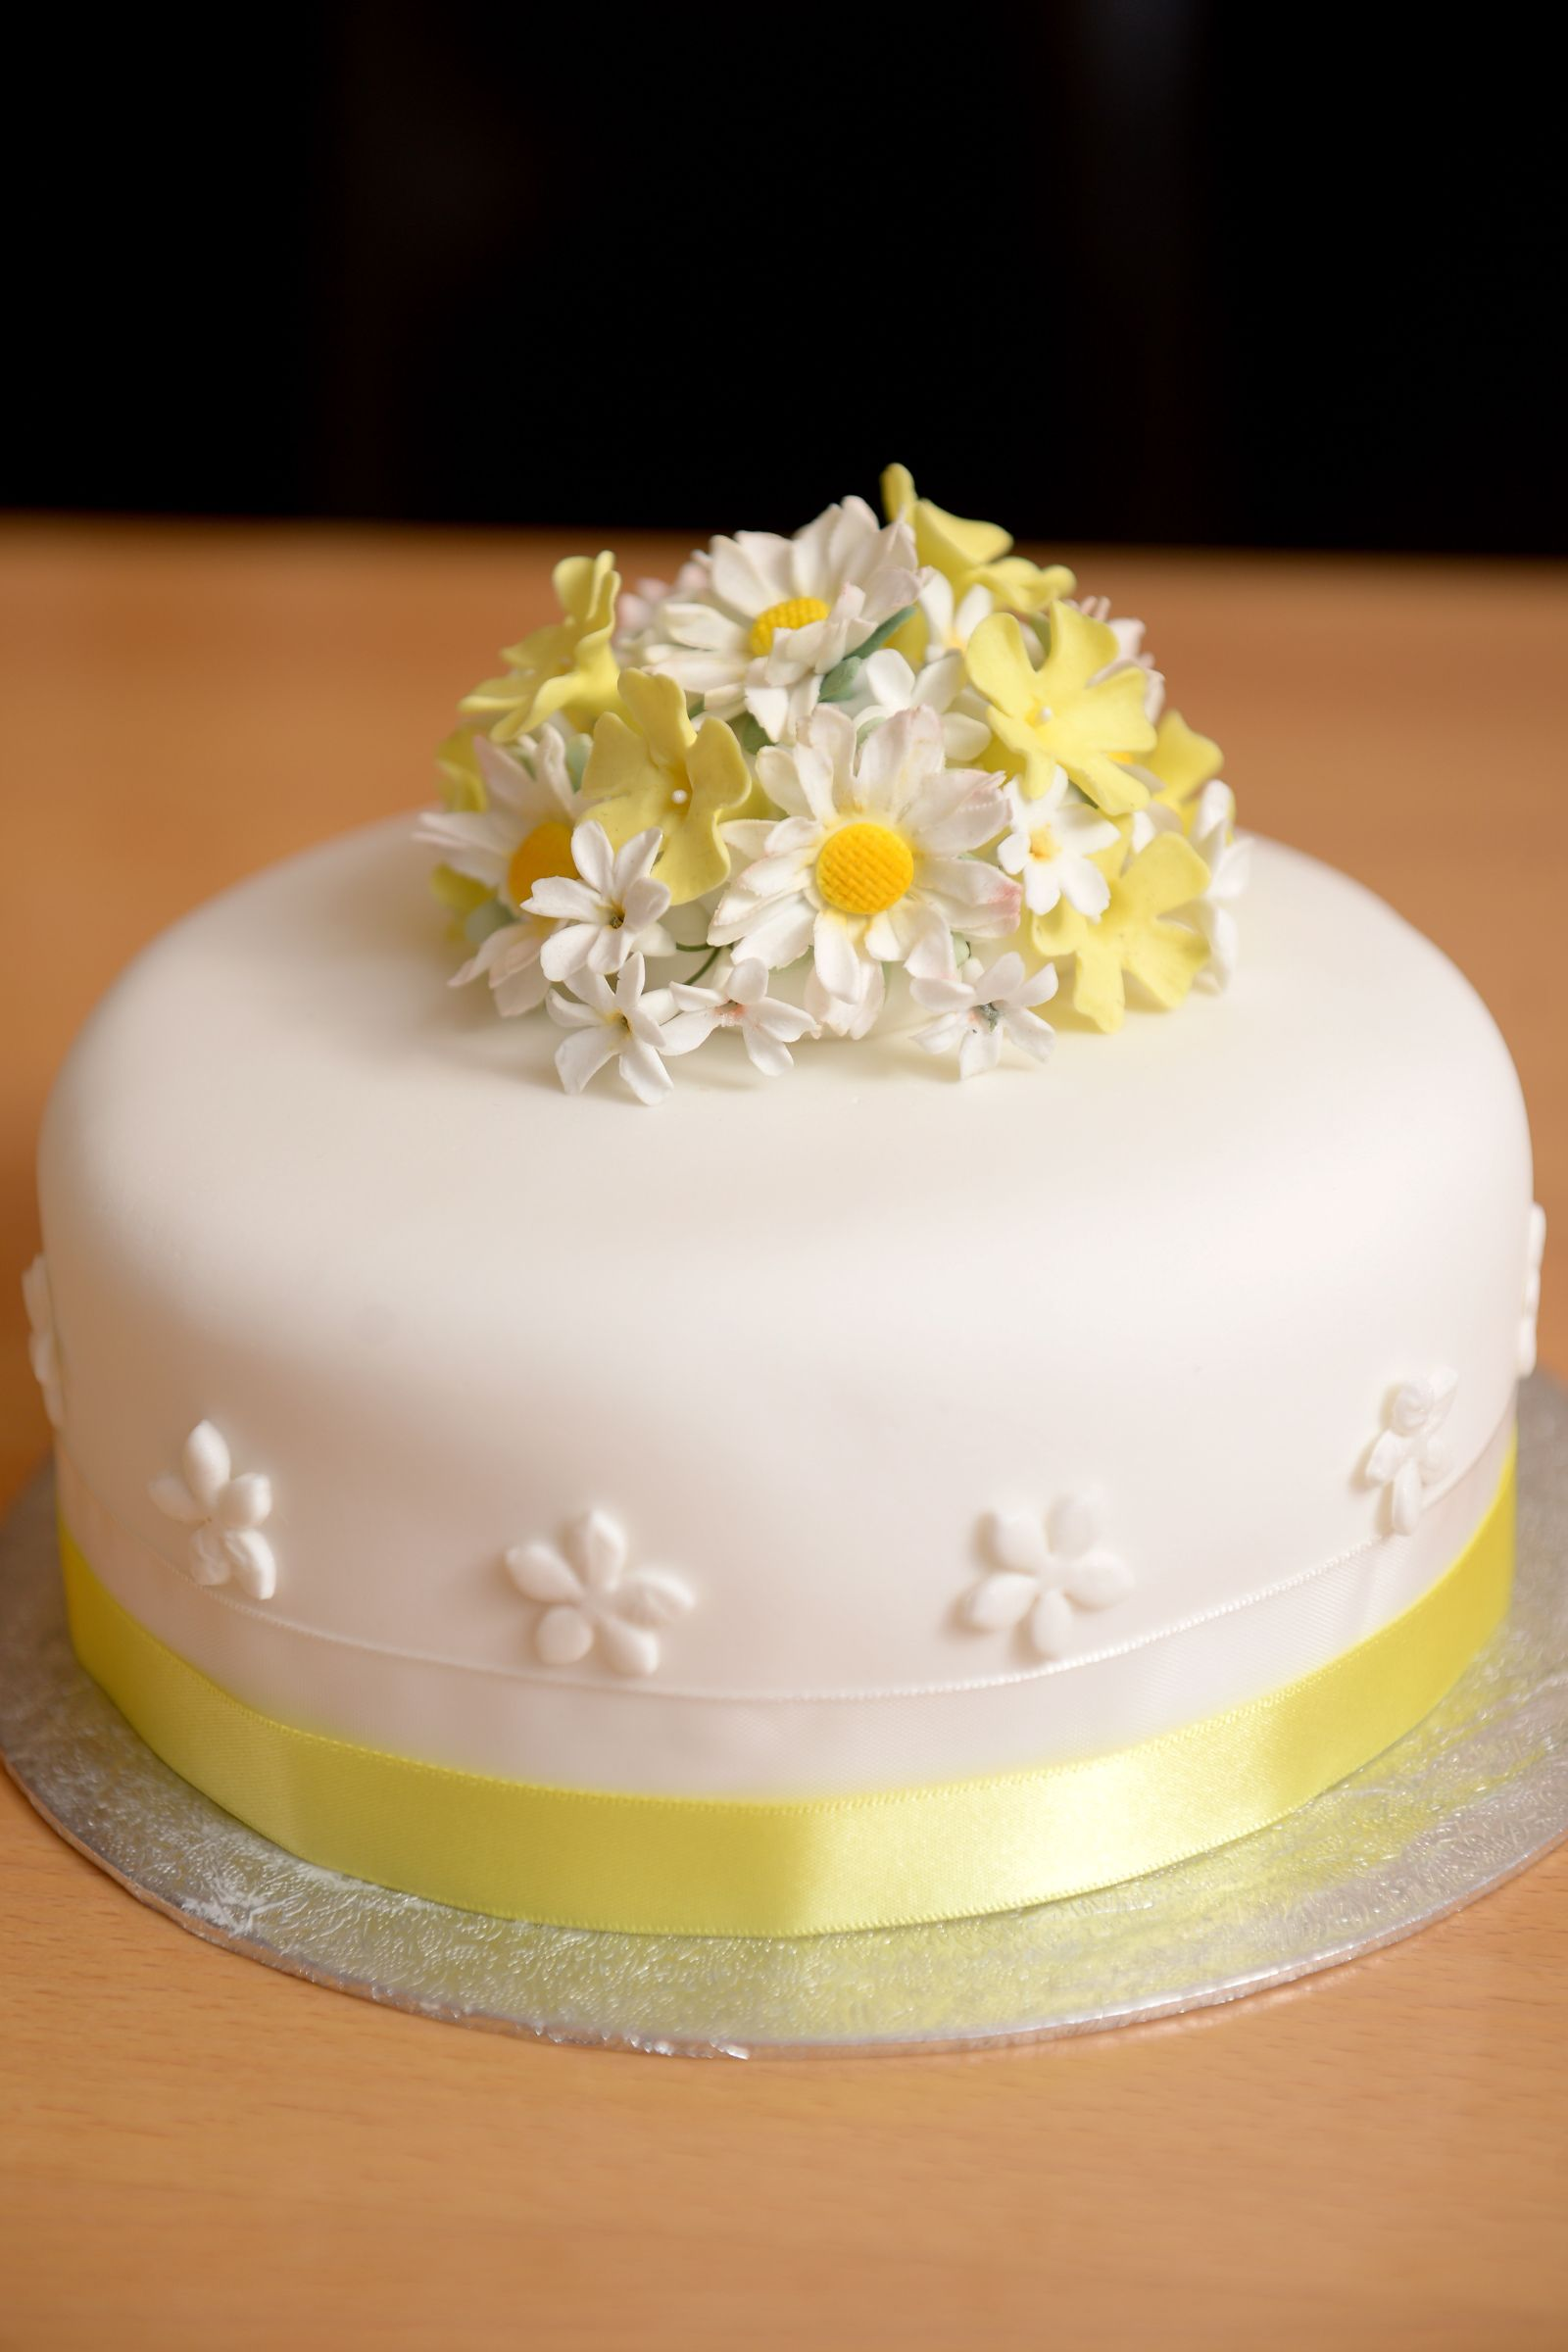 A Lemon Drizzle Cake Coated With Smooth Fondant Icing And